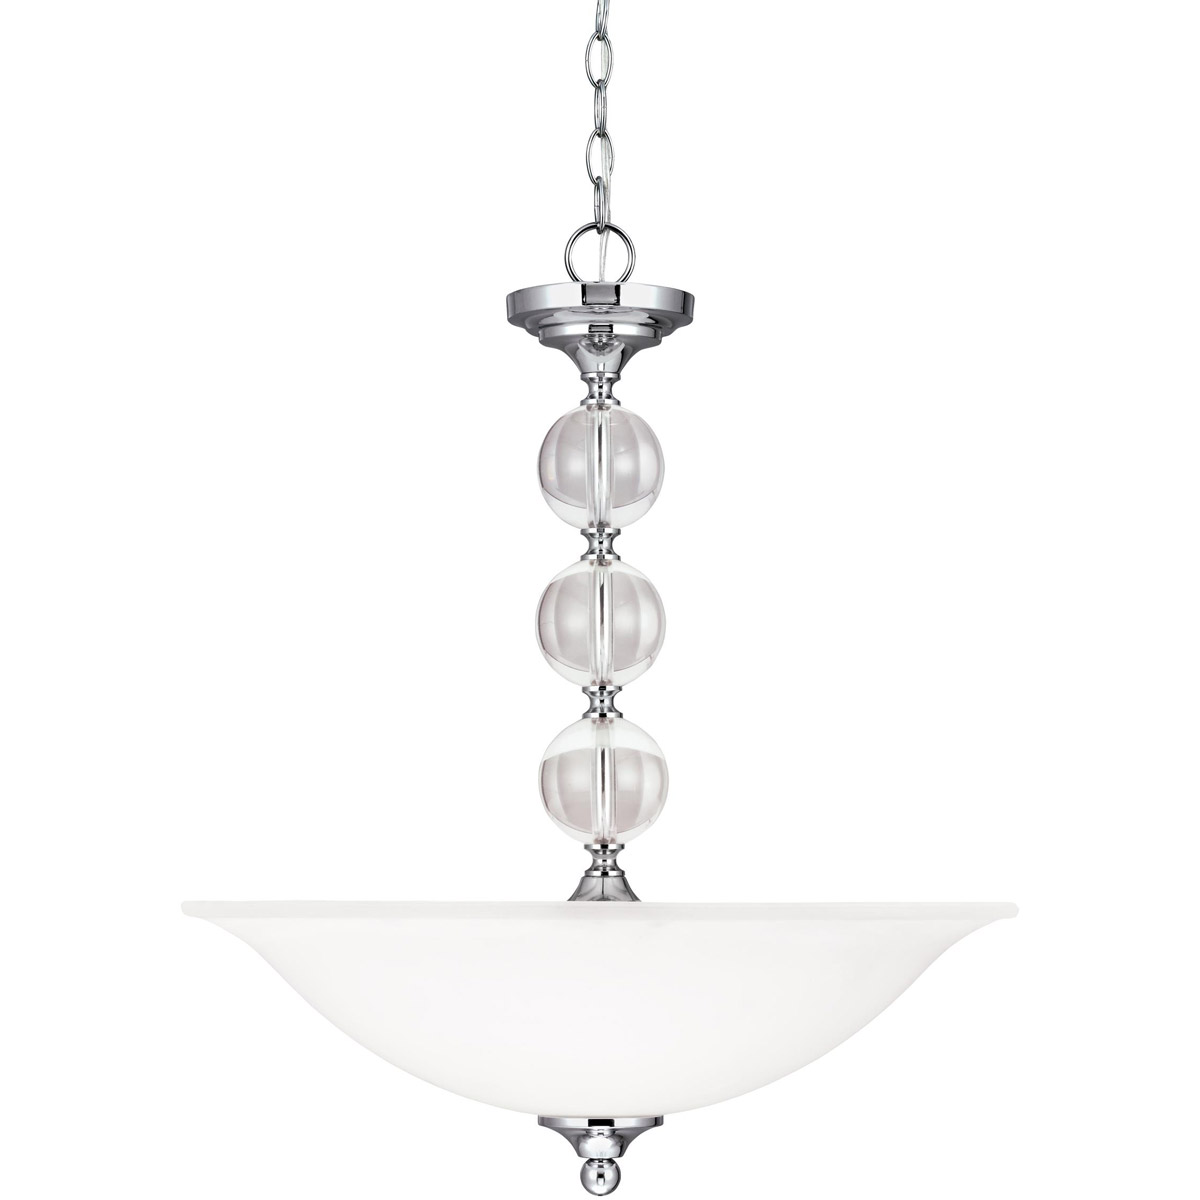 Sea Gull Englehorn 3 Light Pendant in Chrome / Optic Crystal 6613403BLE-05